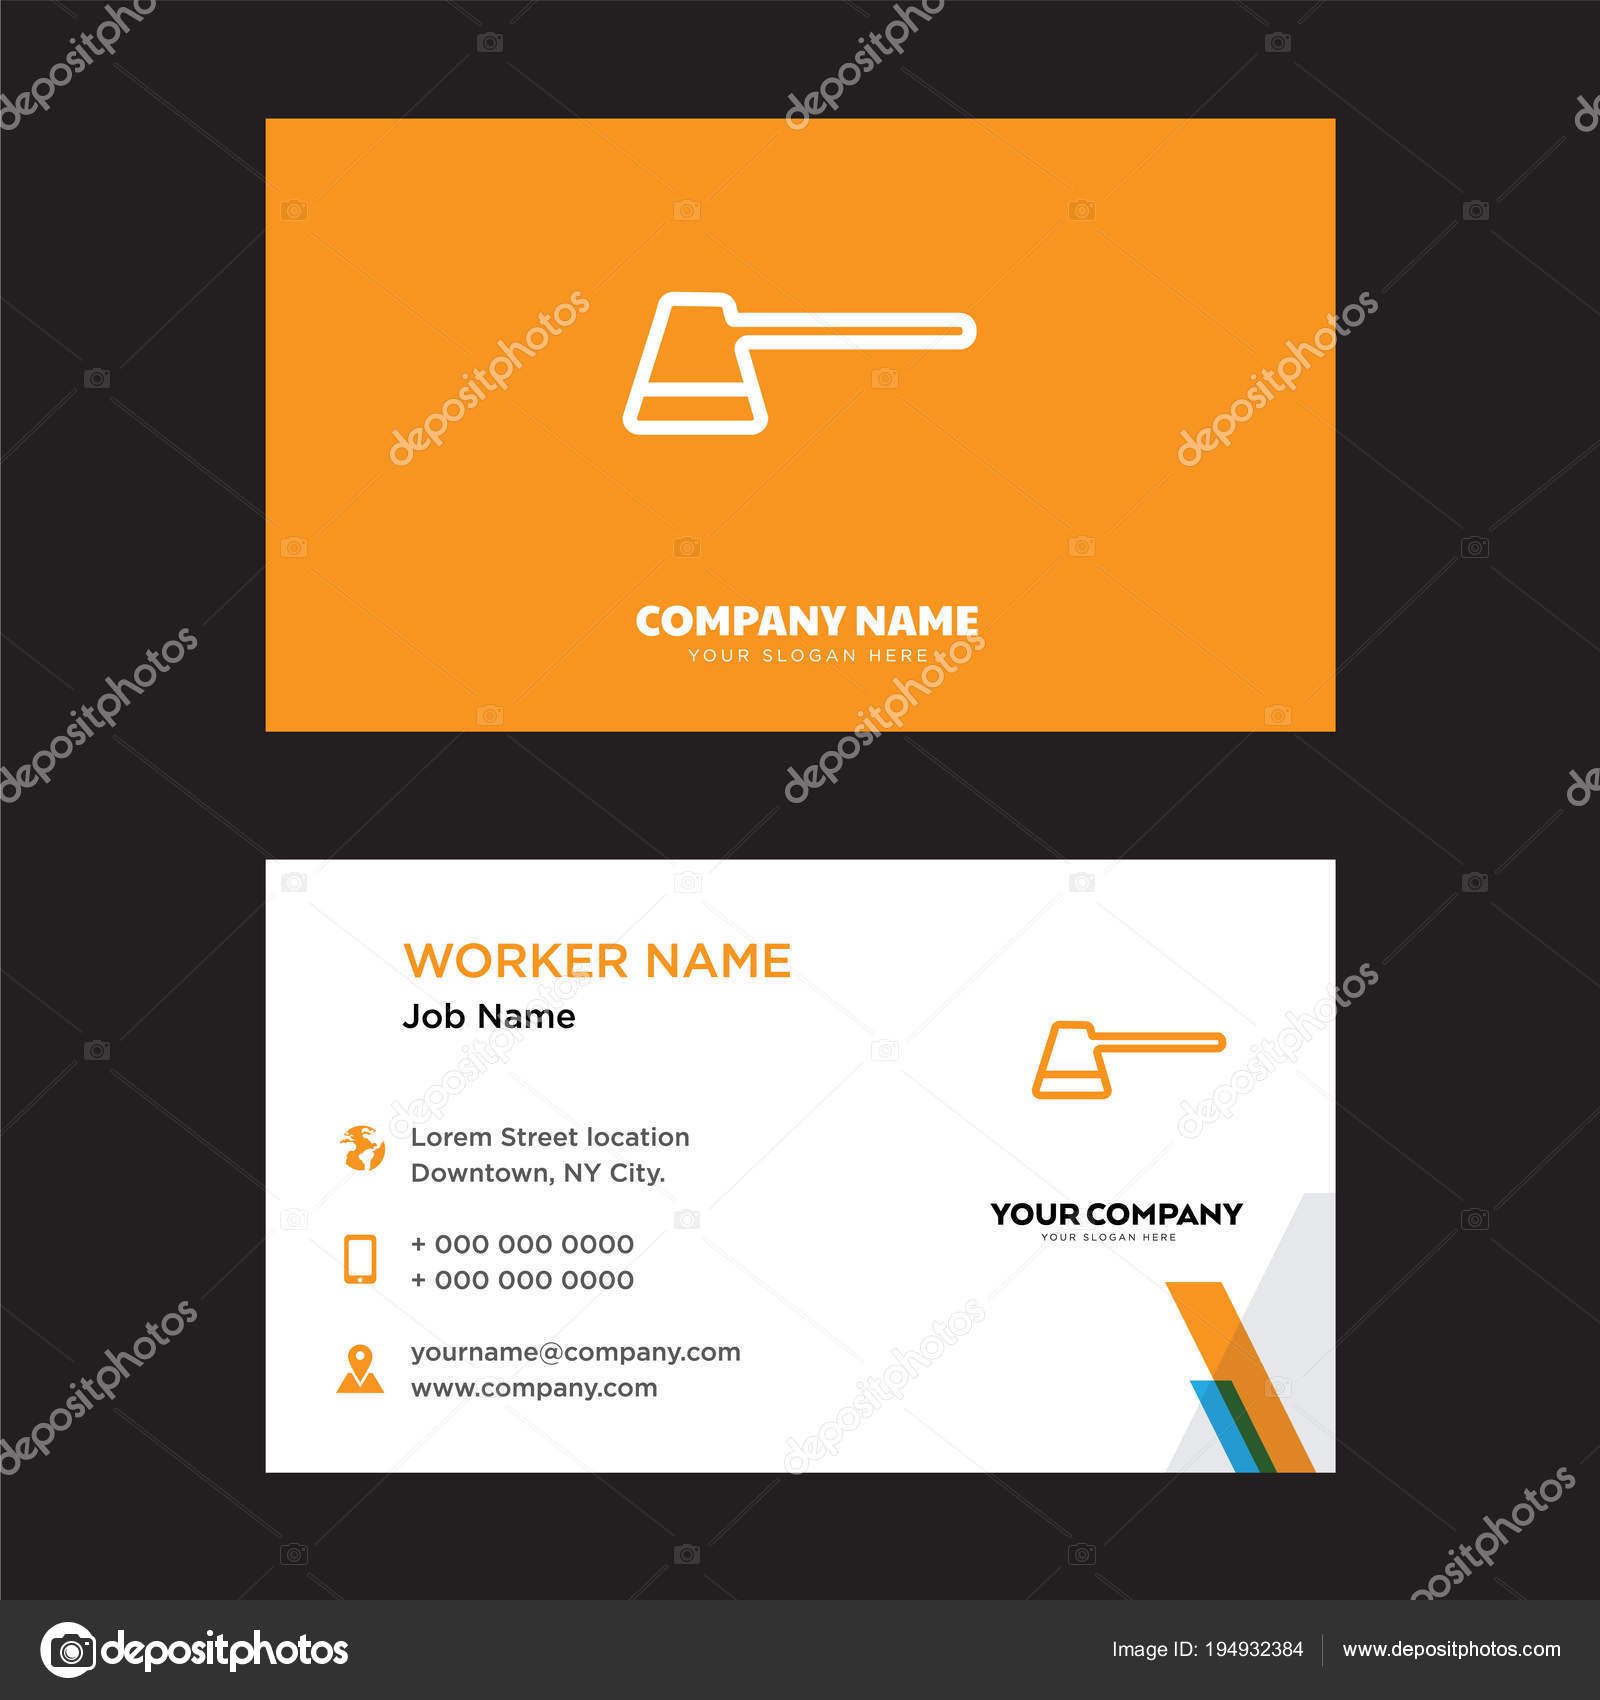 Coffee business card design vetor de stock vectorbest 194932384 coffee business card design vetor de stock reheart Gallery